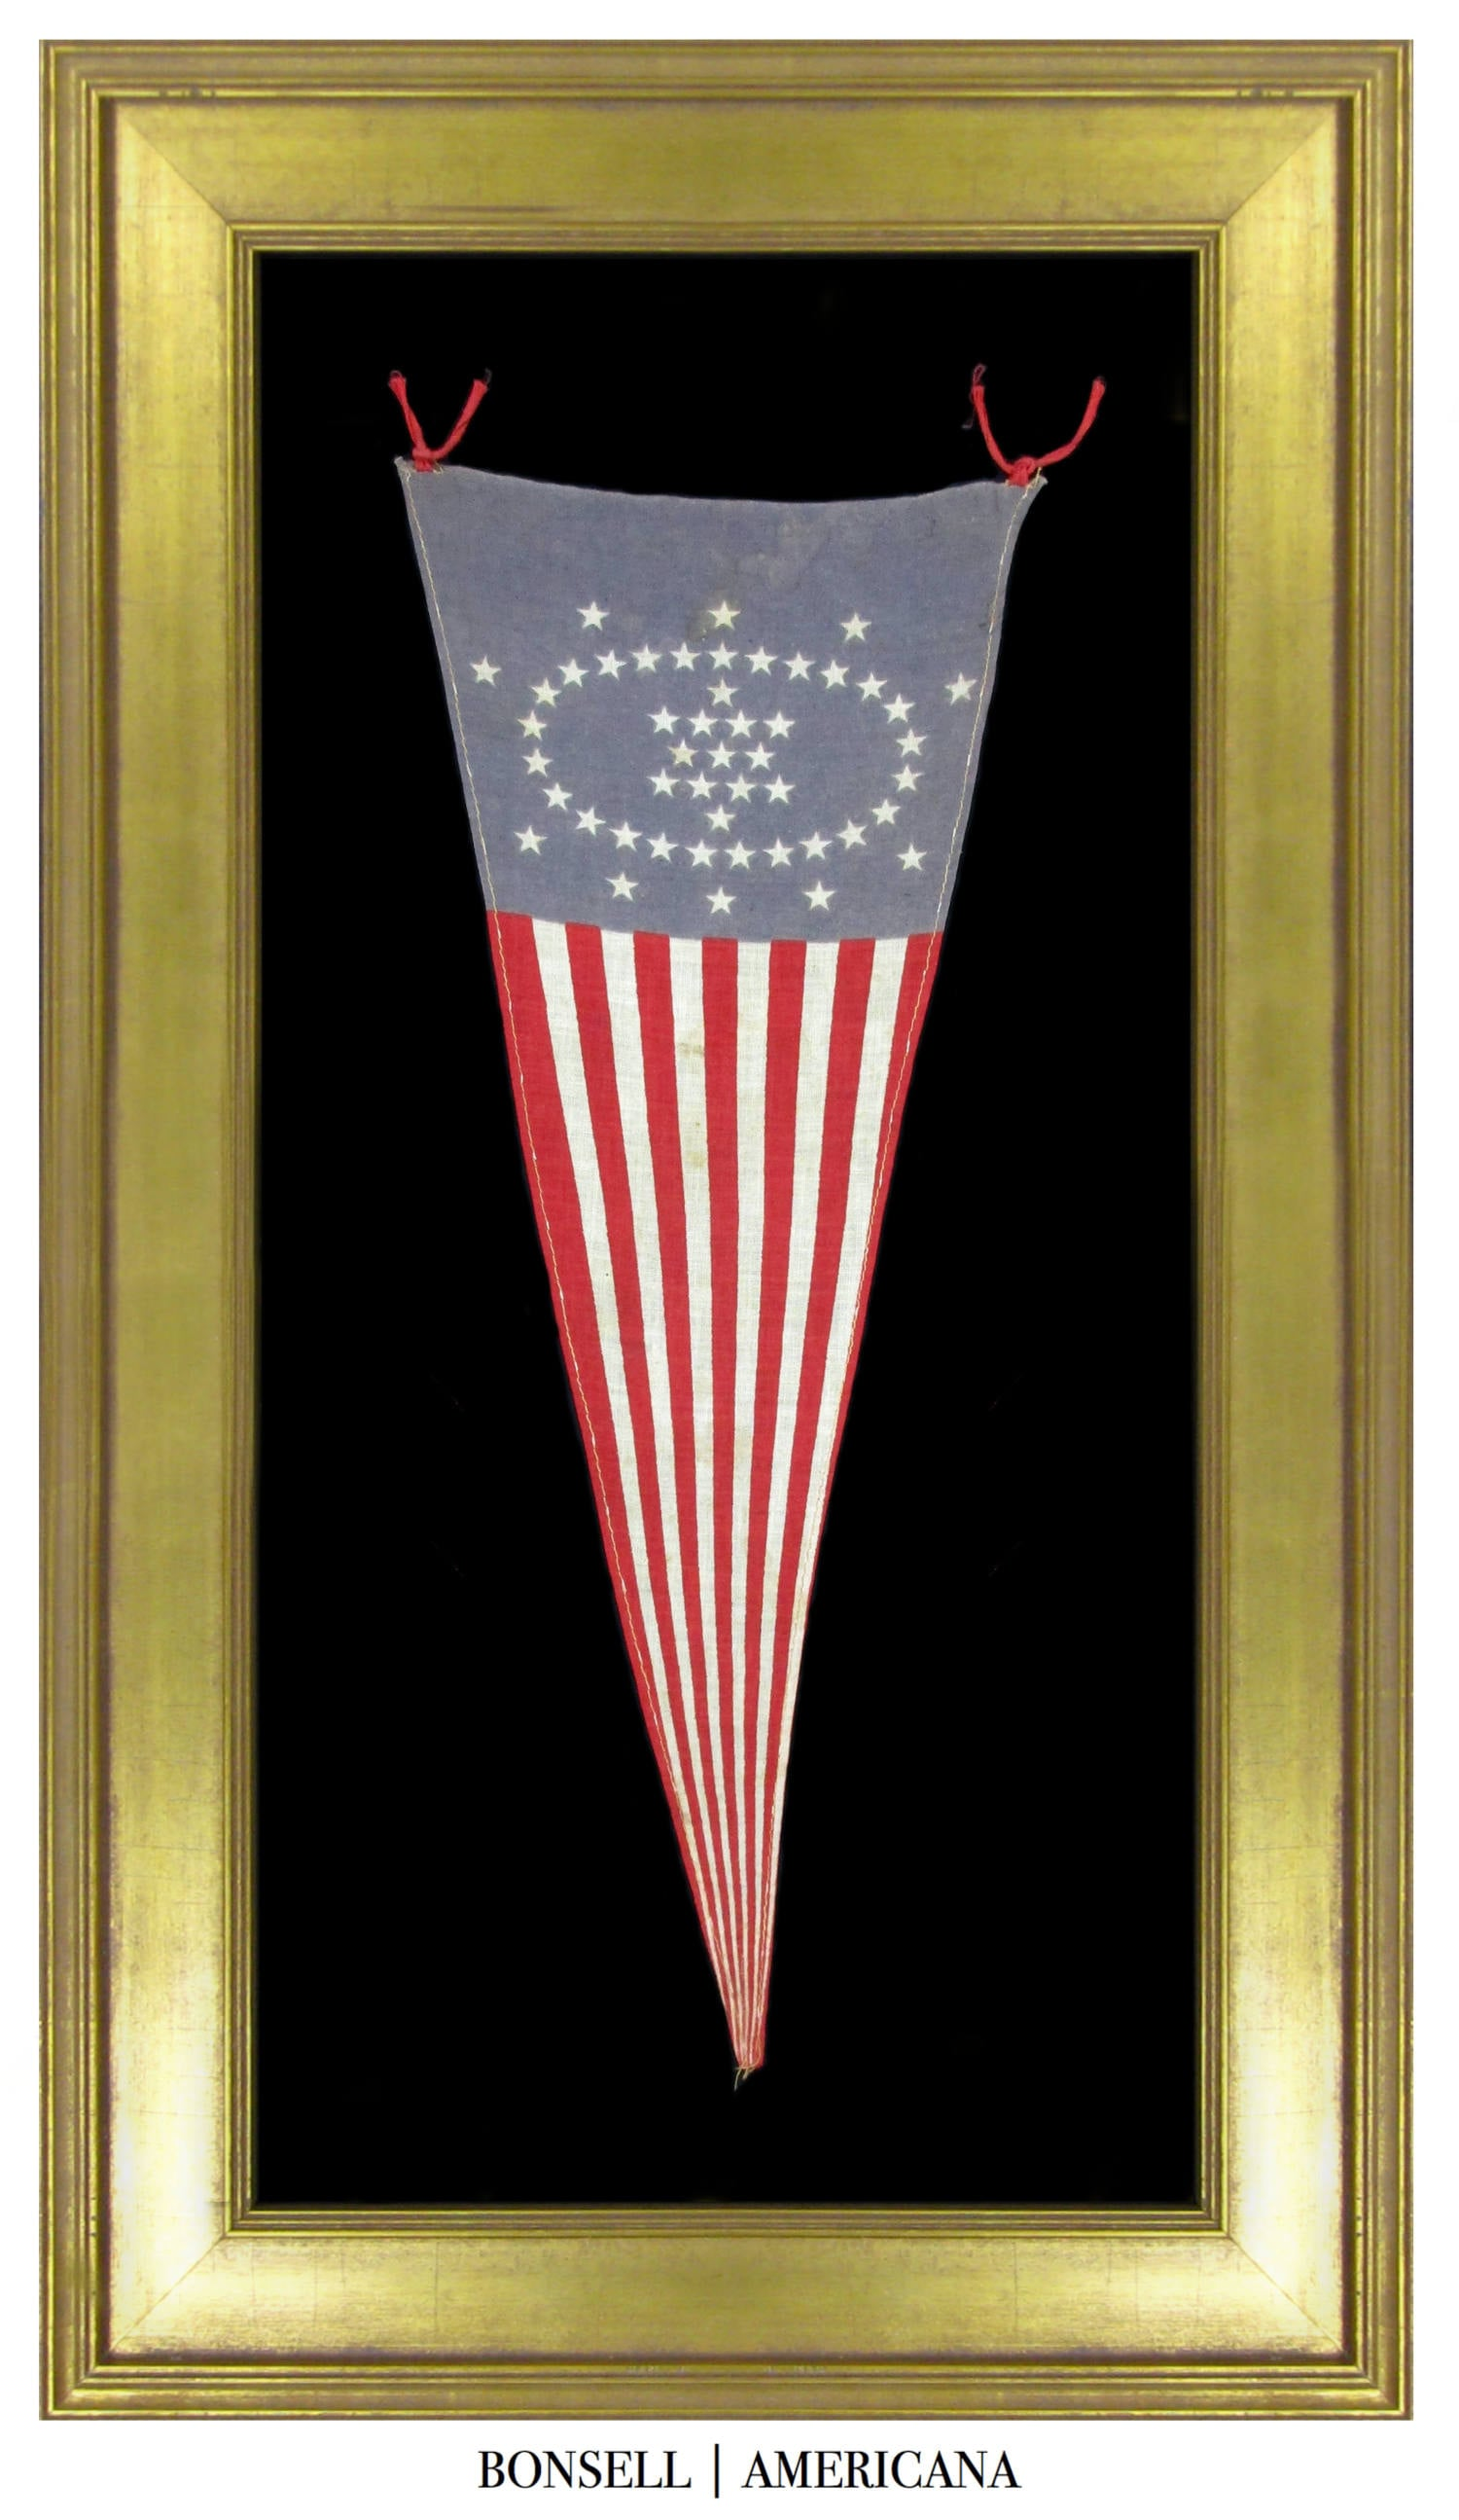 48 Star Antique Whipple Pennant